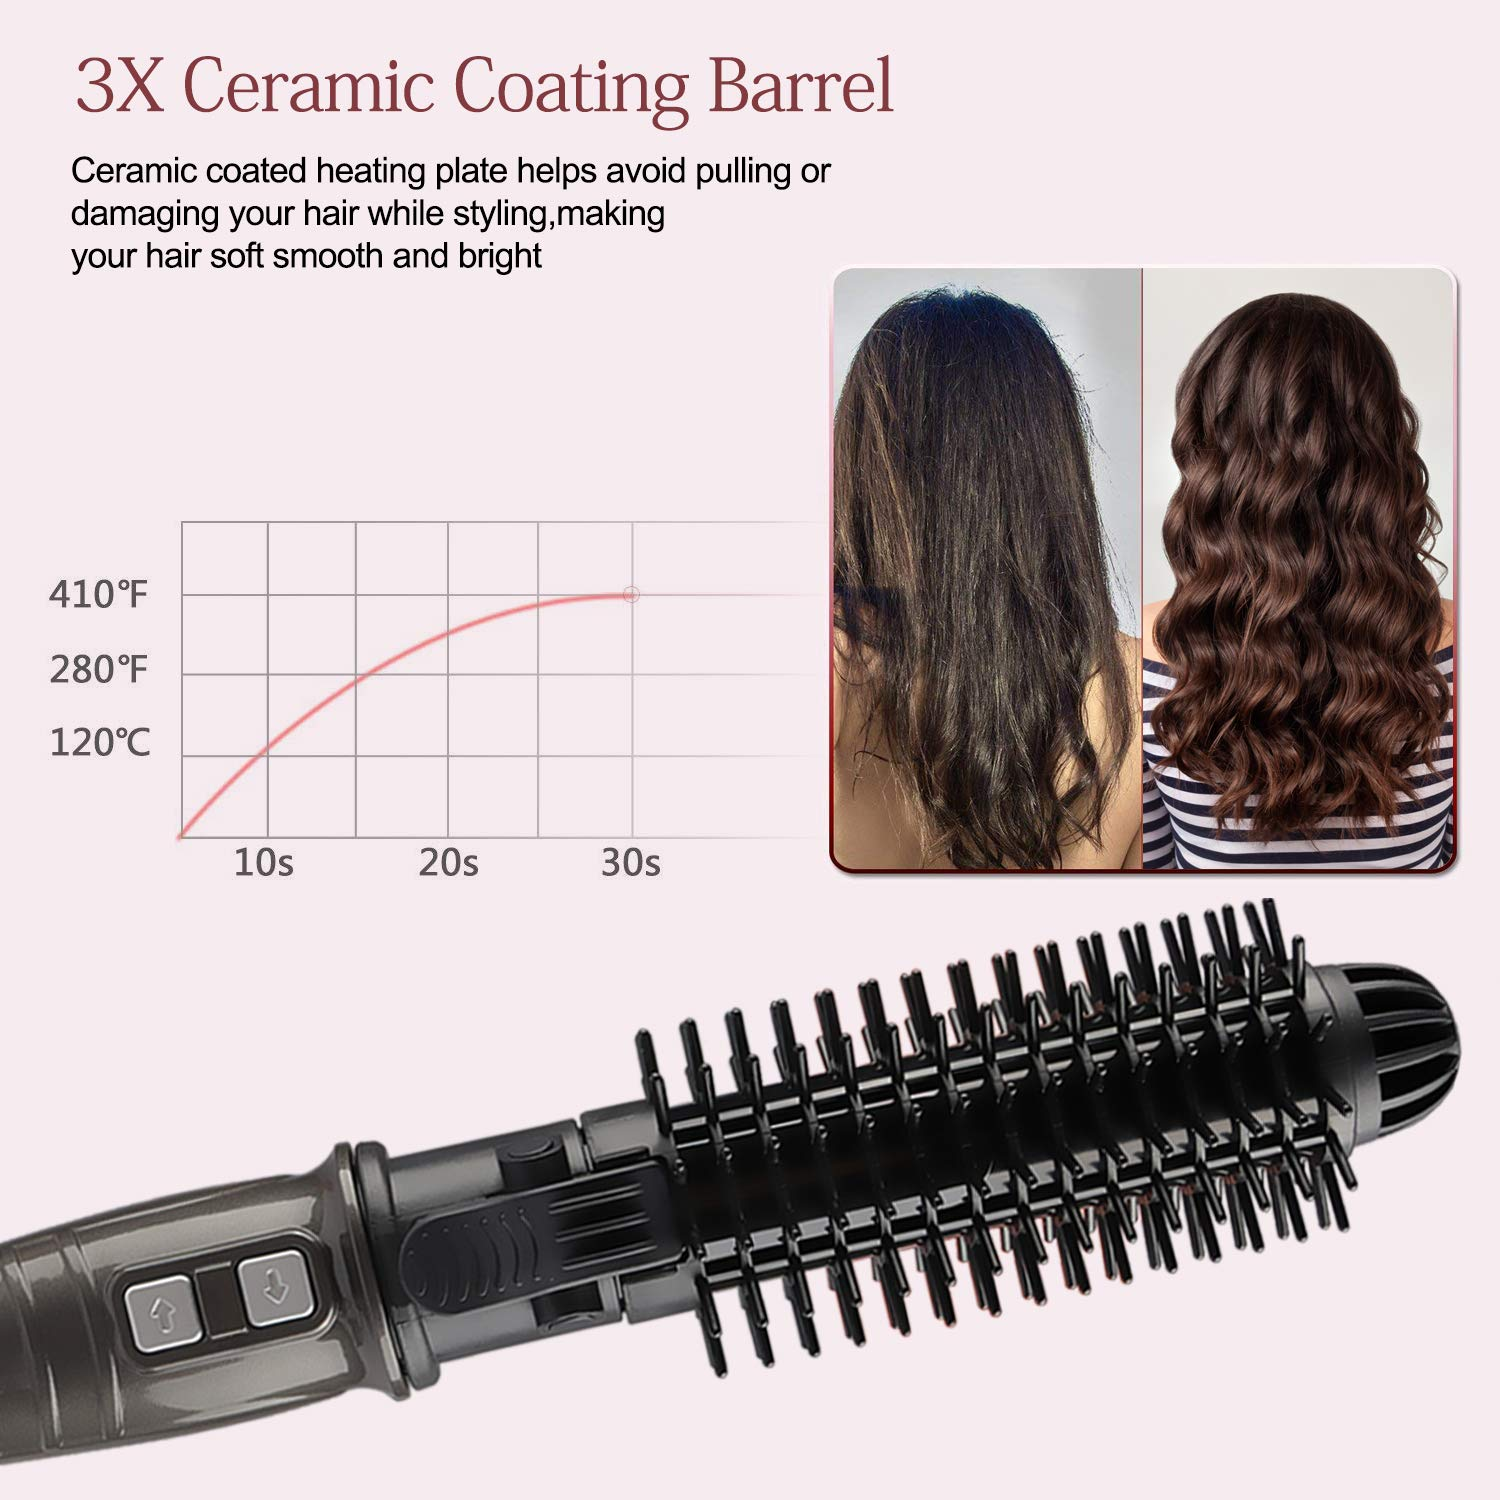 HISOON Professional Curling Iron Brush, 1.25 inch Automatic Curling Iron 2 in 1 Dual Voltage Ceramic Tourmaline Hair Curler Hot Brush, Anti-Scald Instant Heat Up Curling Wands Black